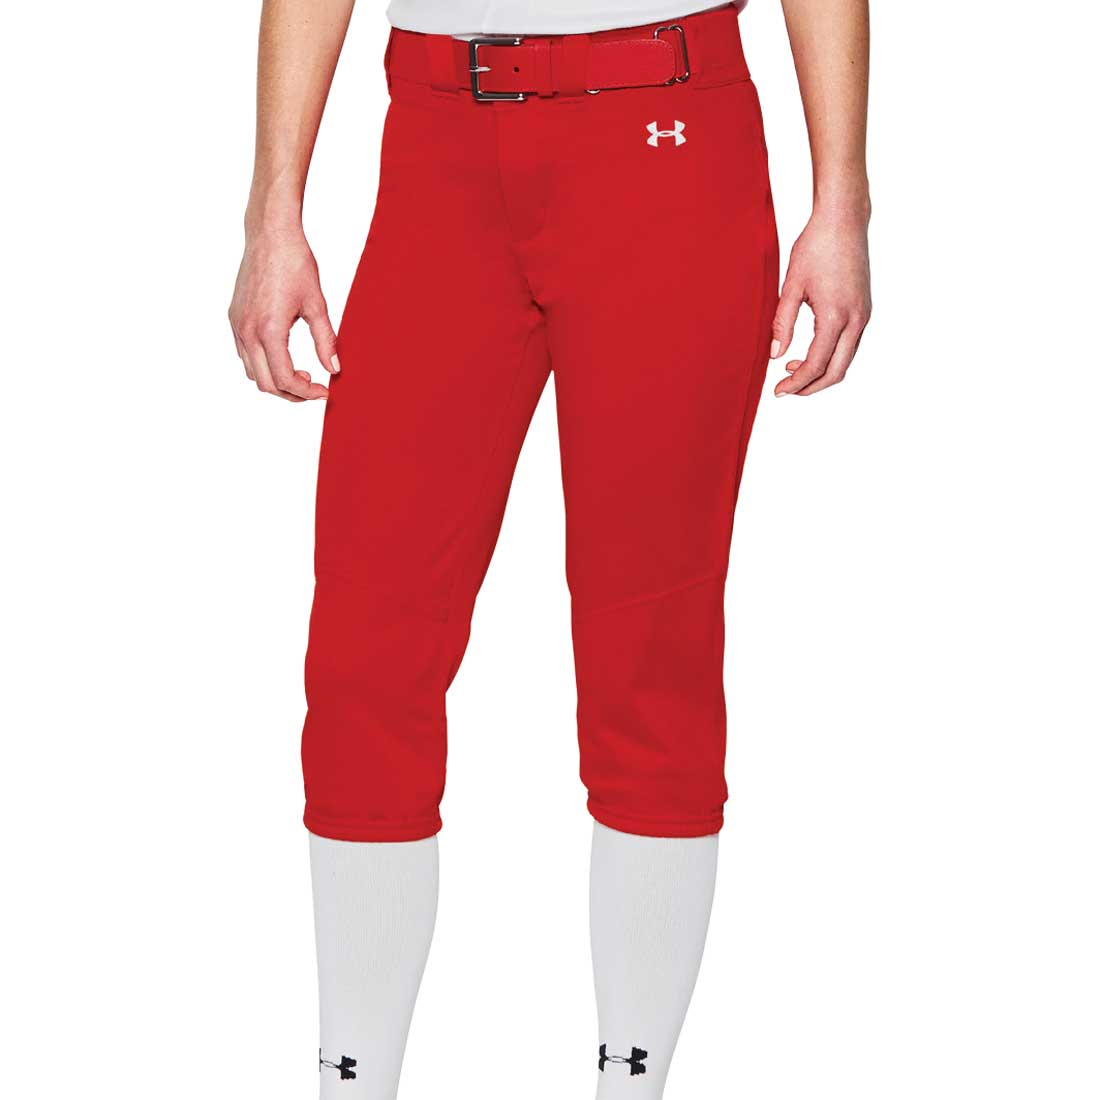 ae65335d3d Under Armour Icon Knicker Pant - longstreth.com